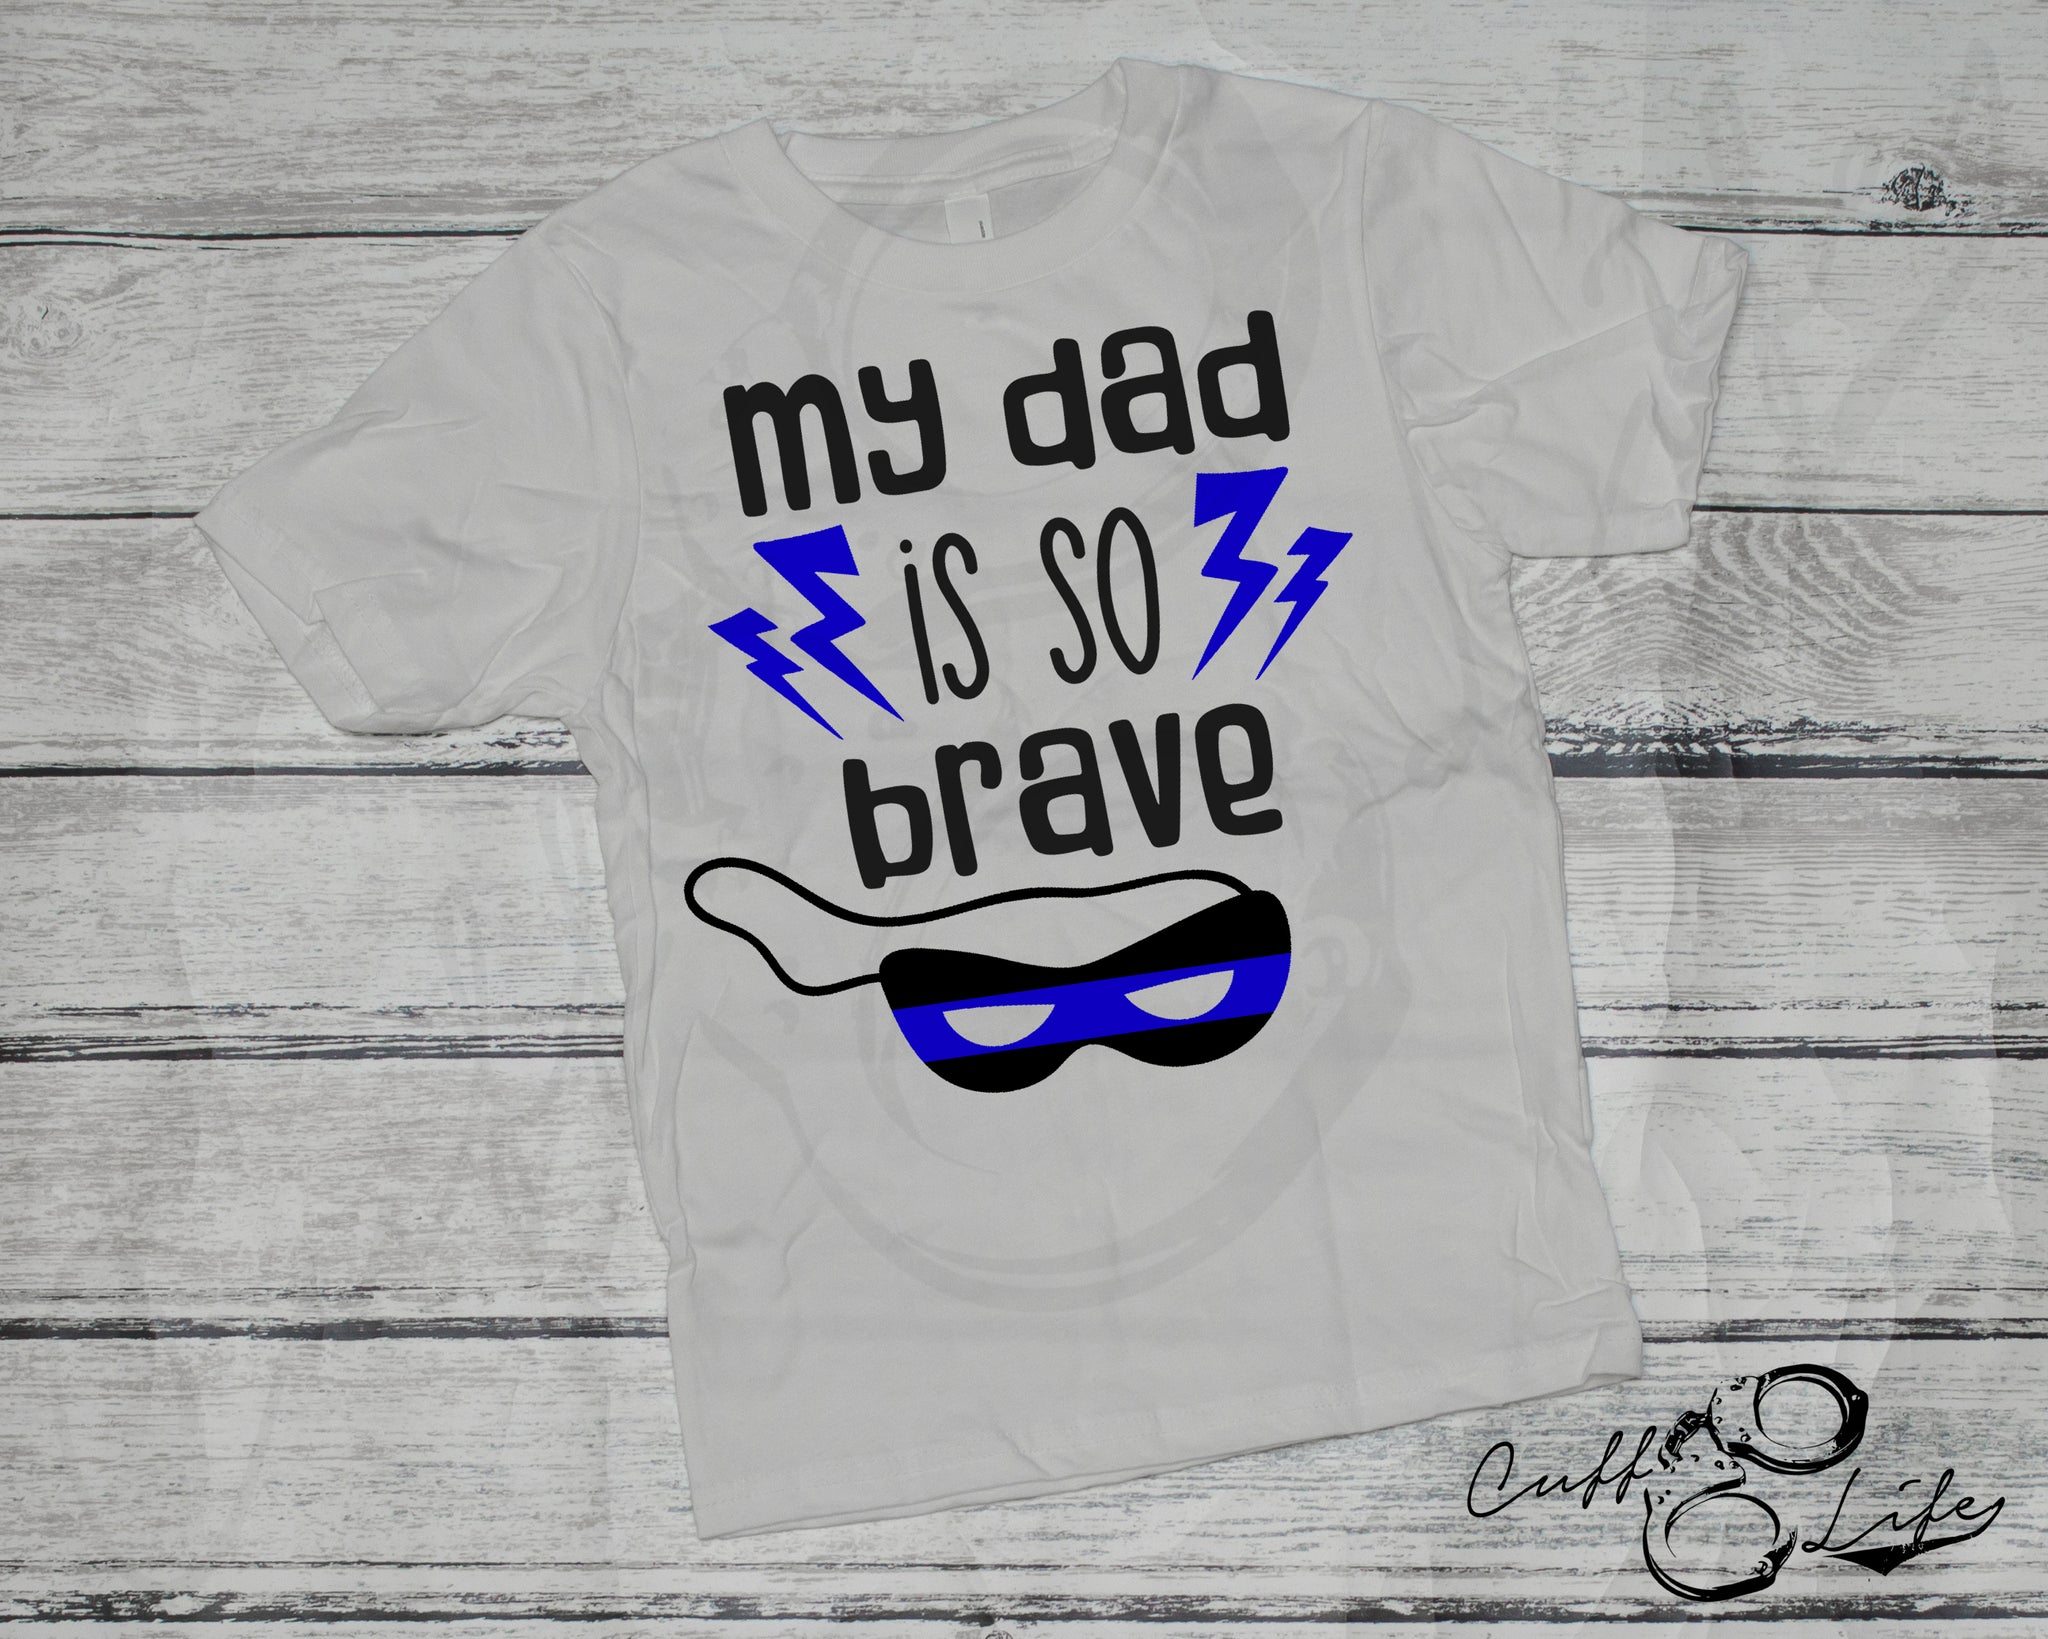 My Dad Is So Brave - Thin Blue Line - Toddler/Youth T-Shirt